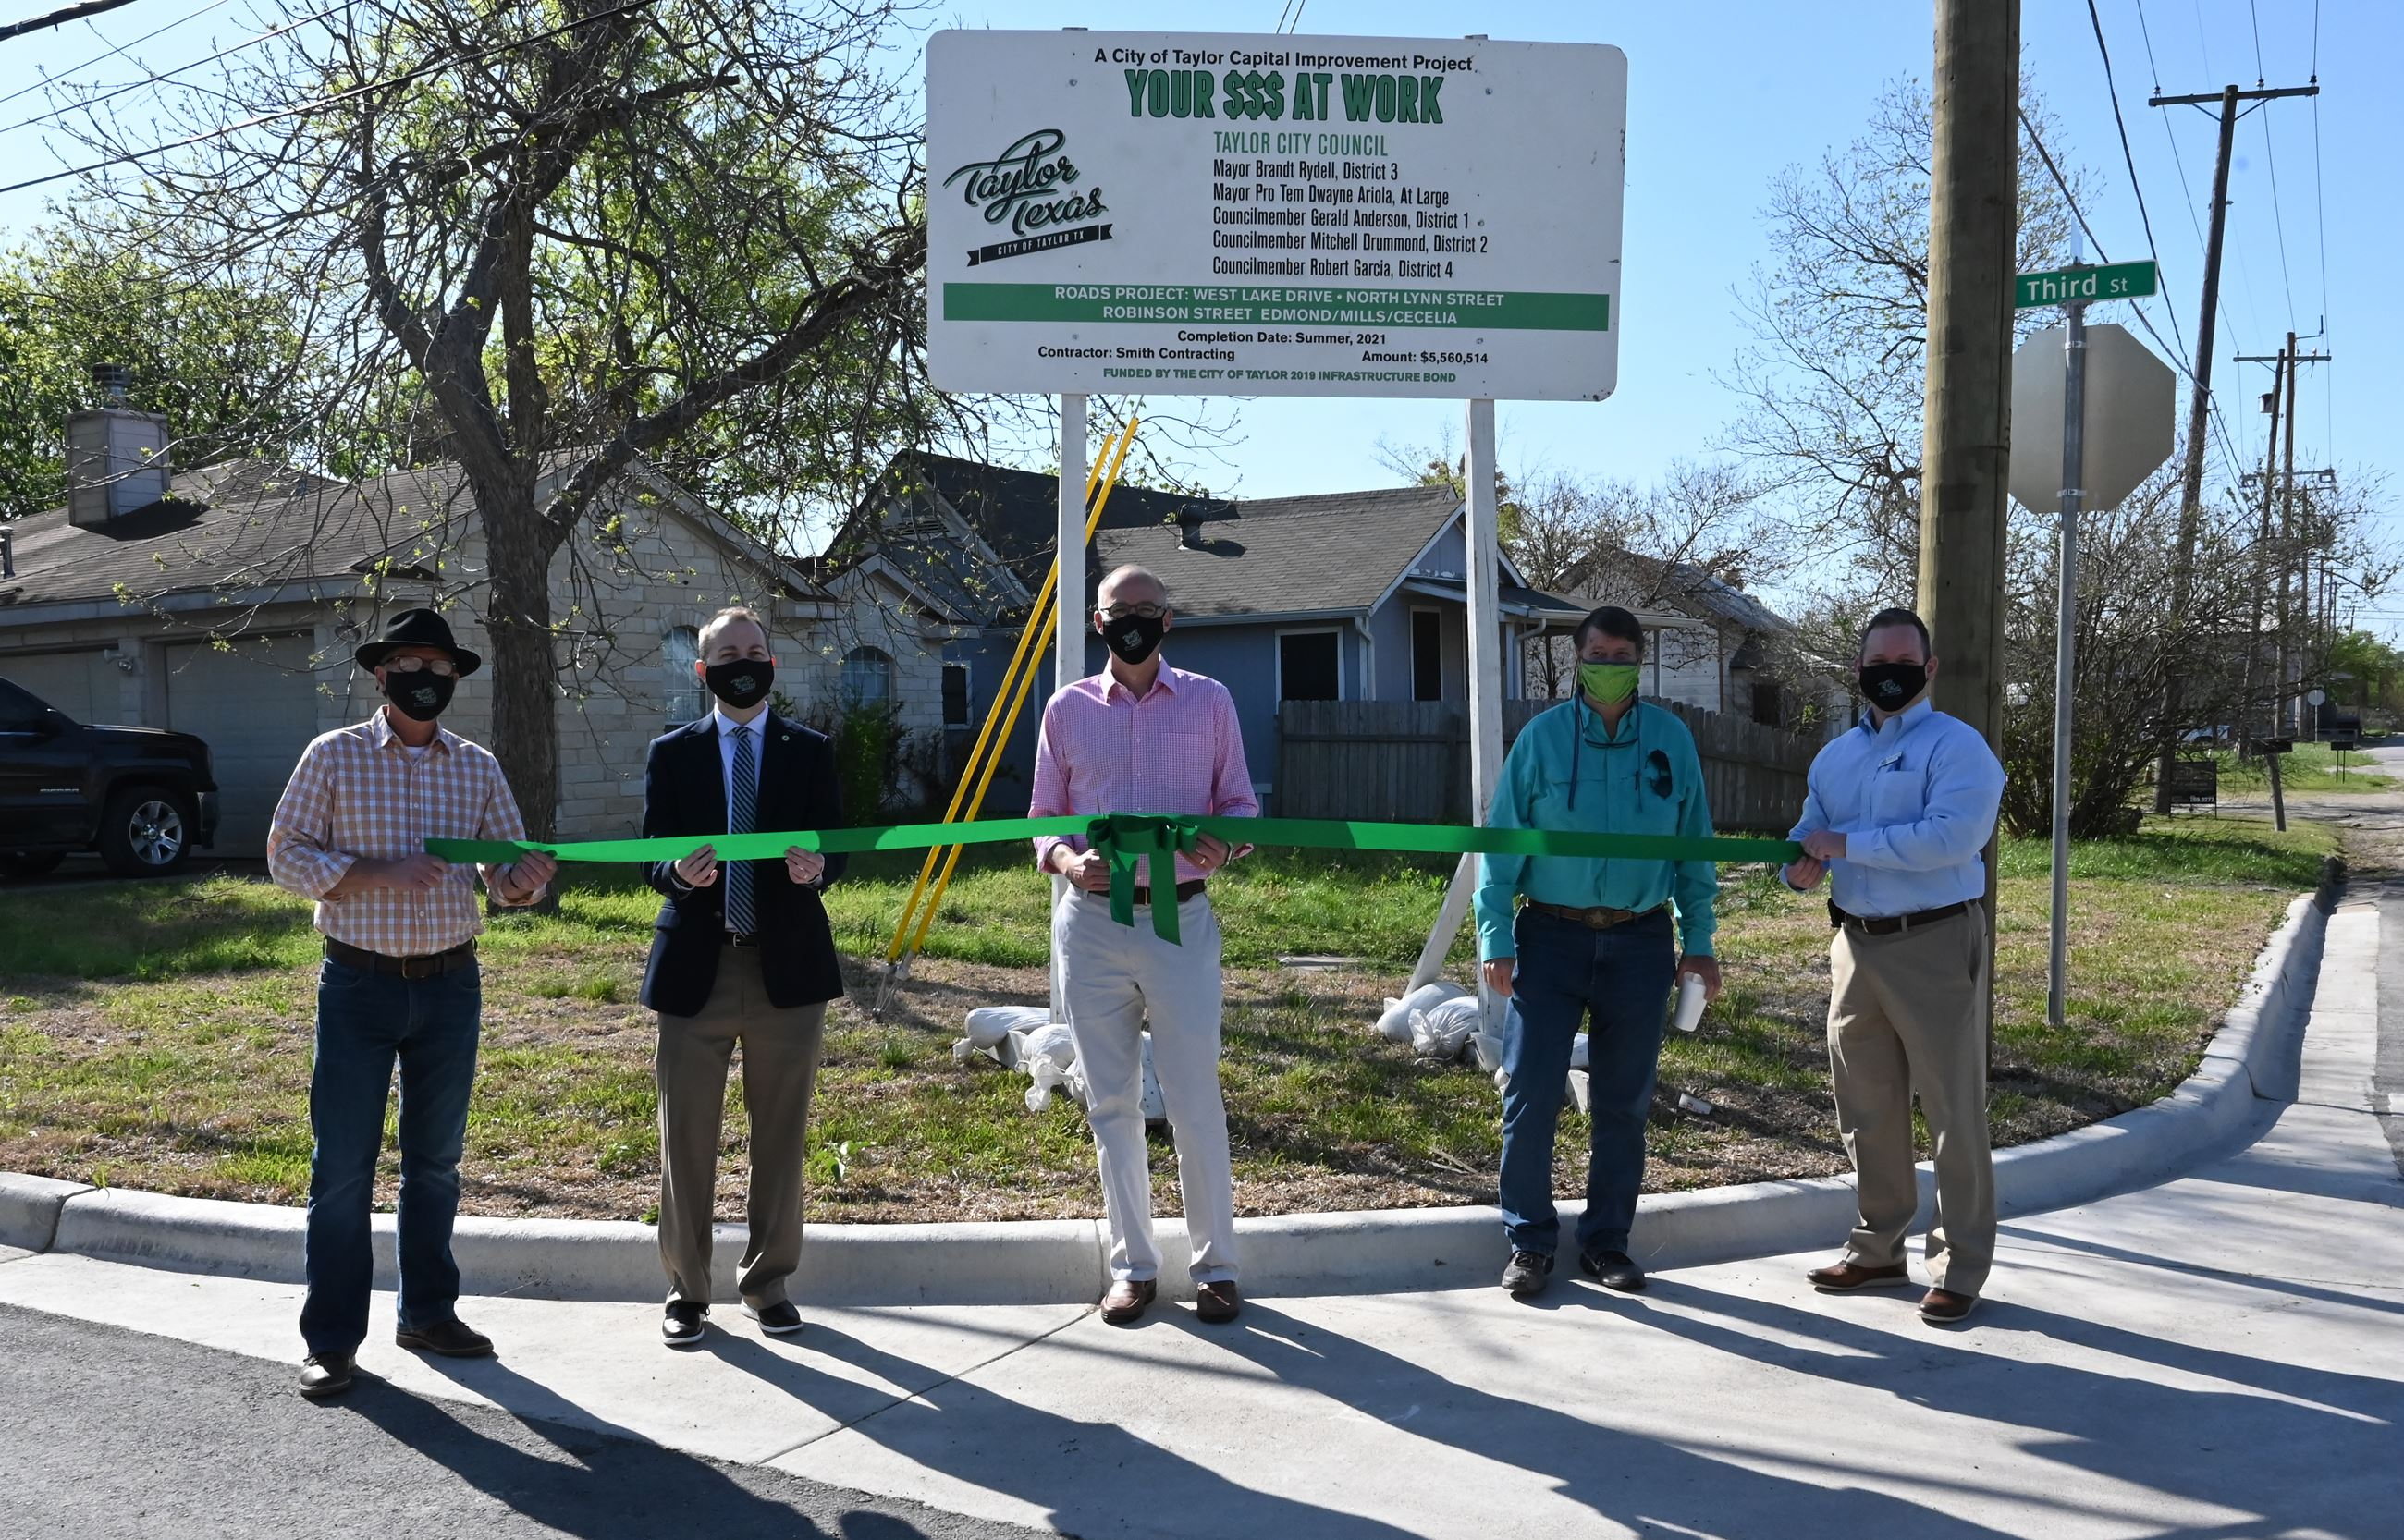 City officials and staff cut a ribbon at Third Street to celebrate completion of reconstrcution